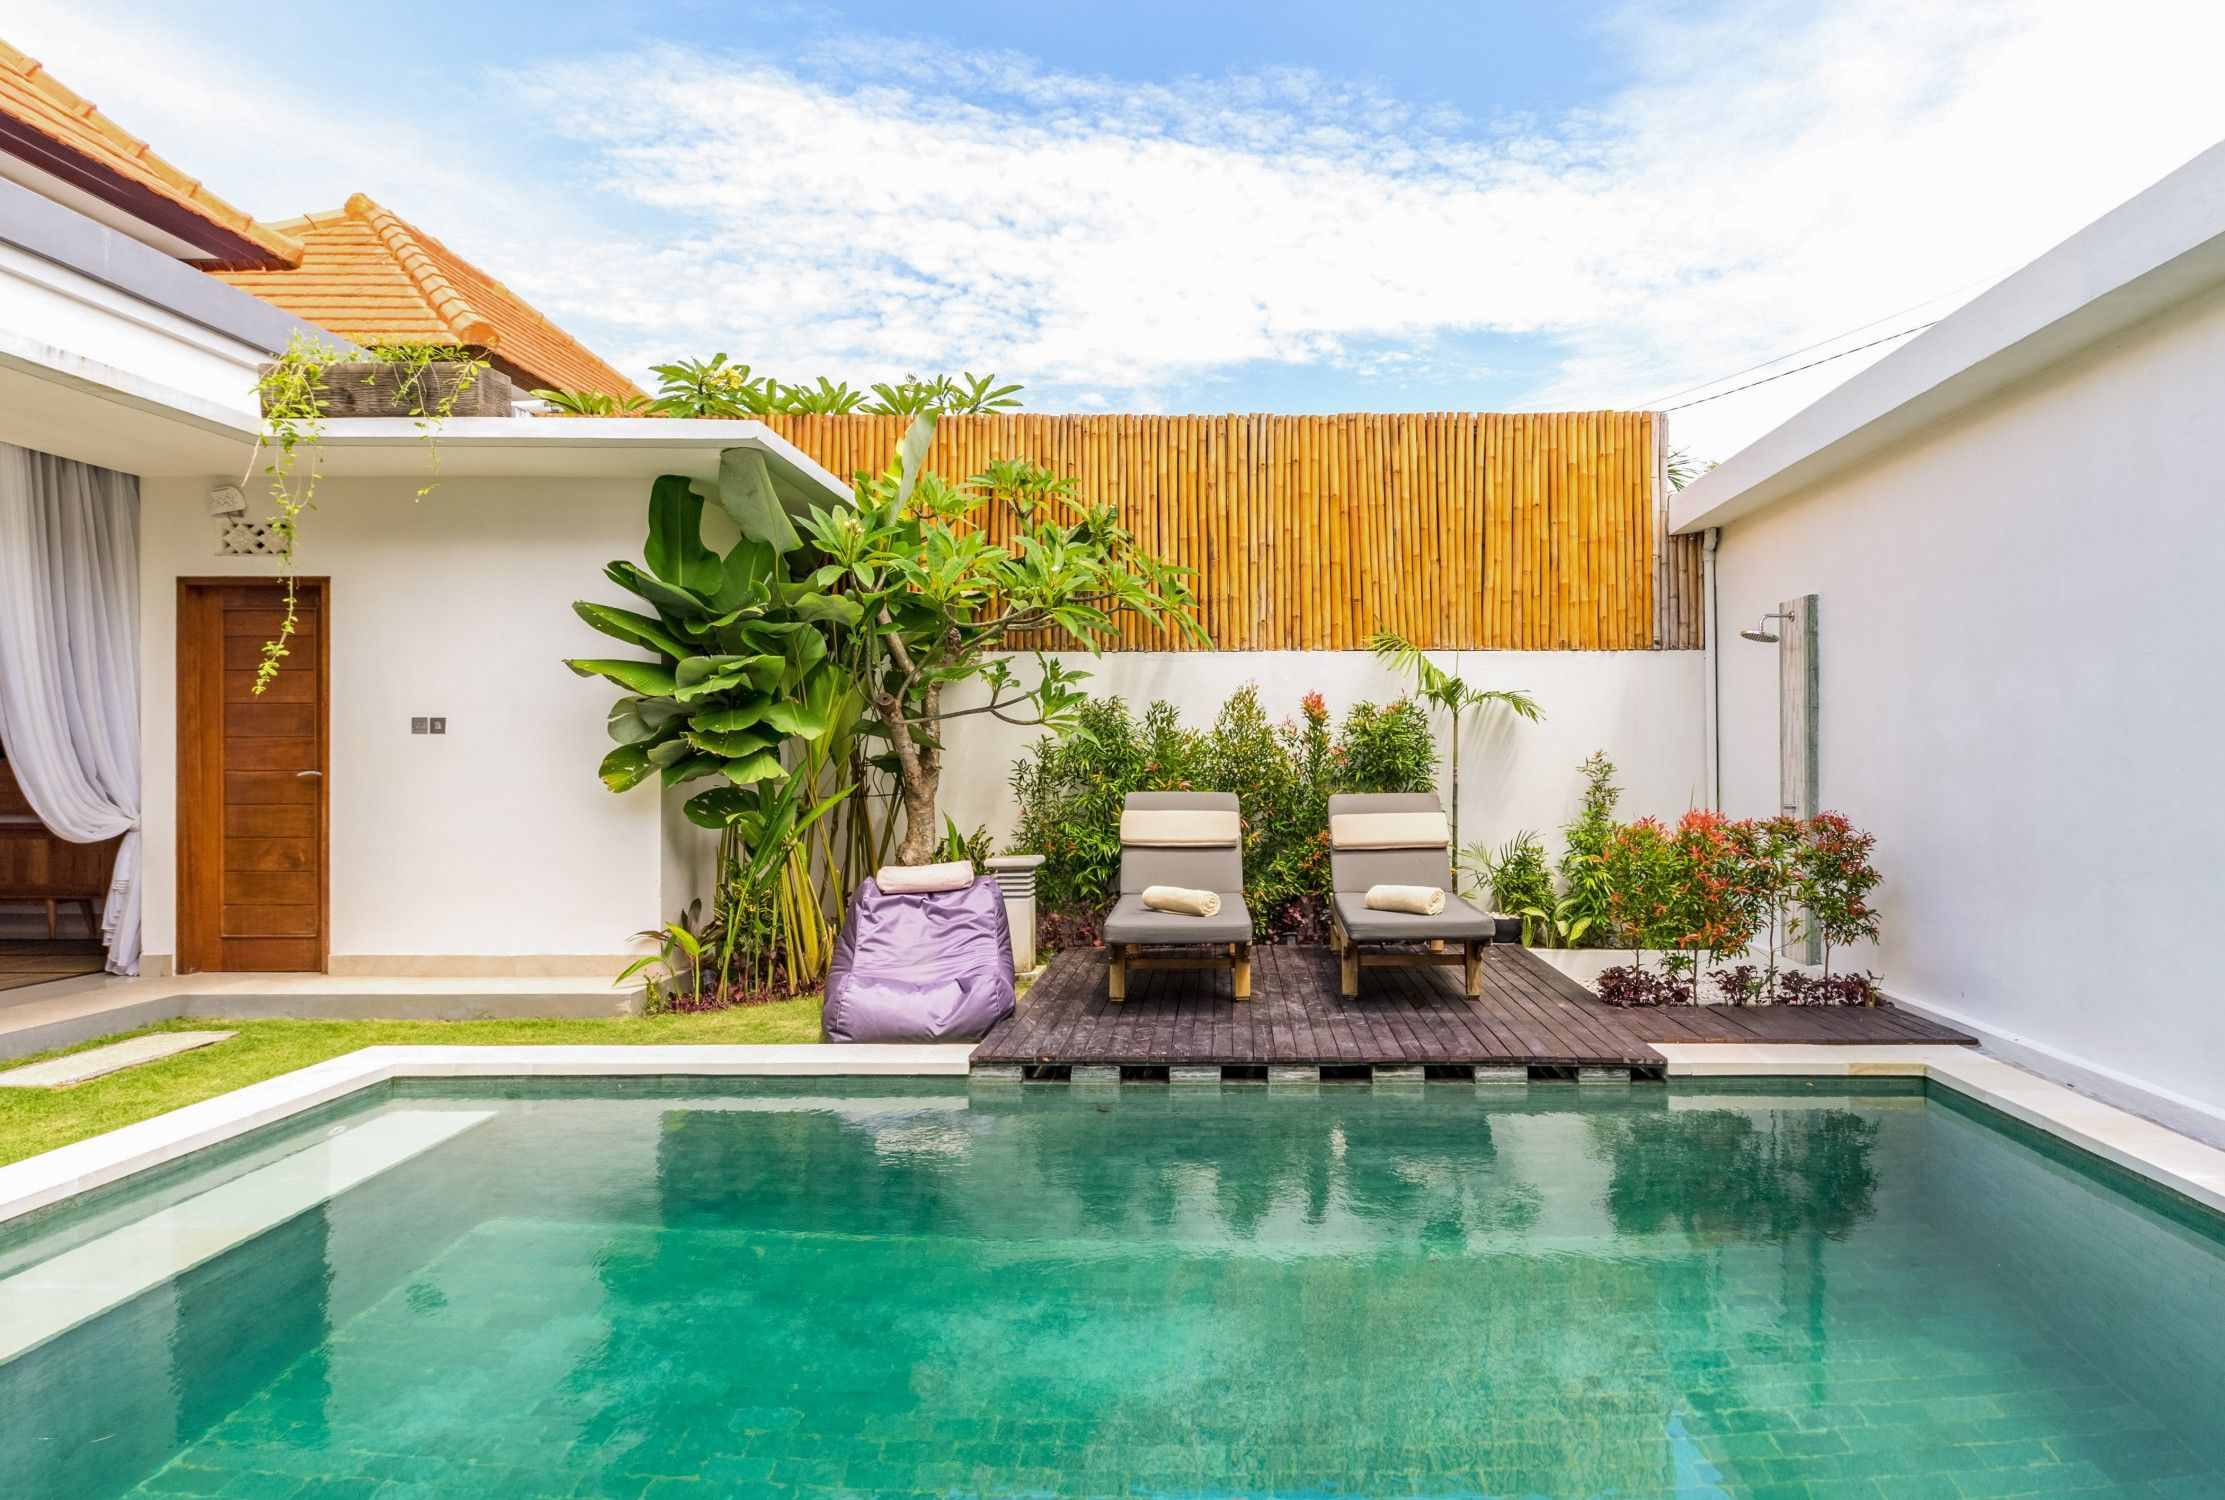 Entire Home Apt In Kuta Indonesia Soak Up The Tropical Rays Or Unwind In The Pool At A Private Modern Villa On A Q Villa Outdoor Living Room Outdoor Living